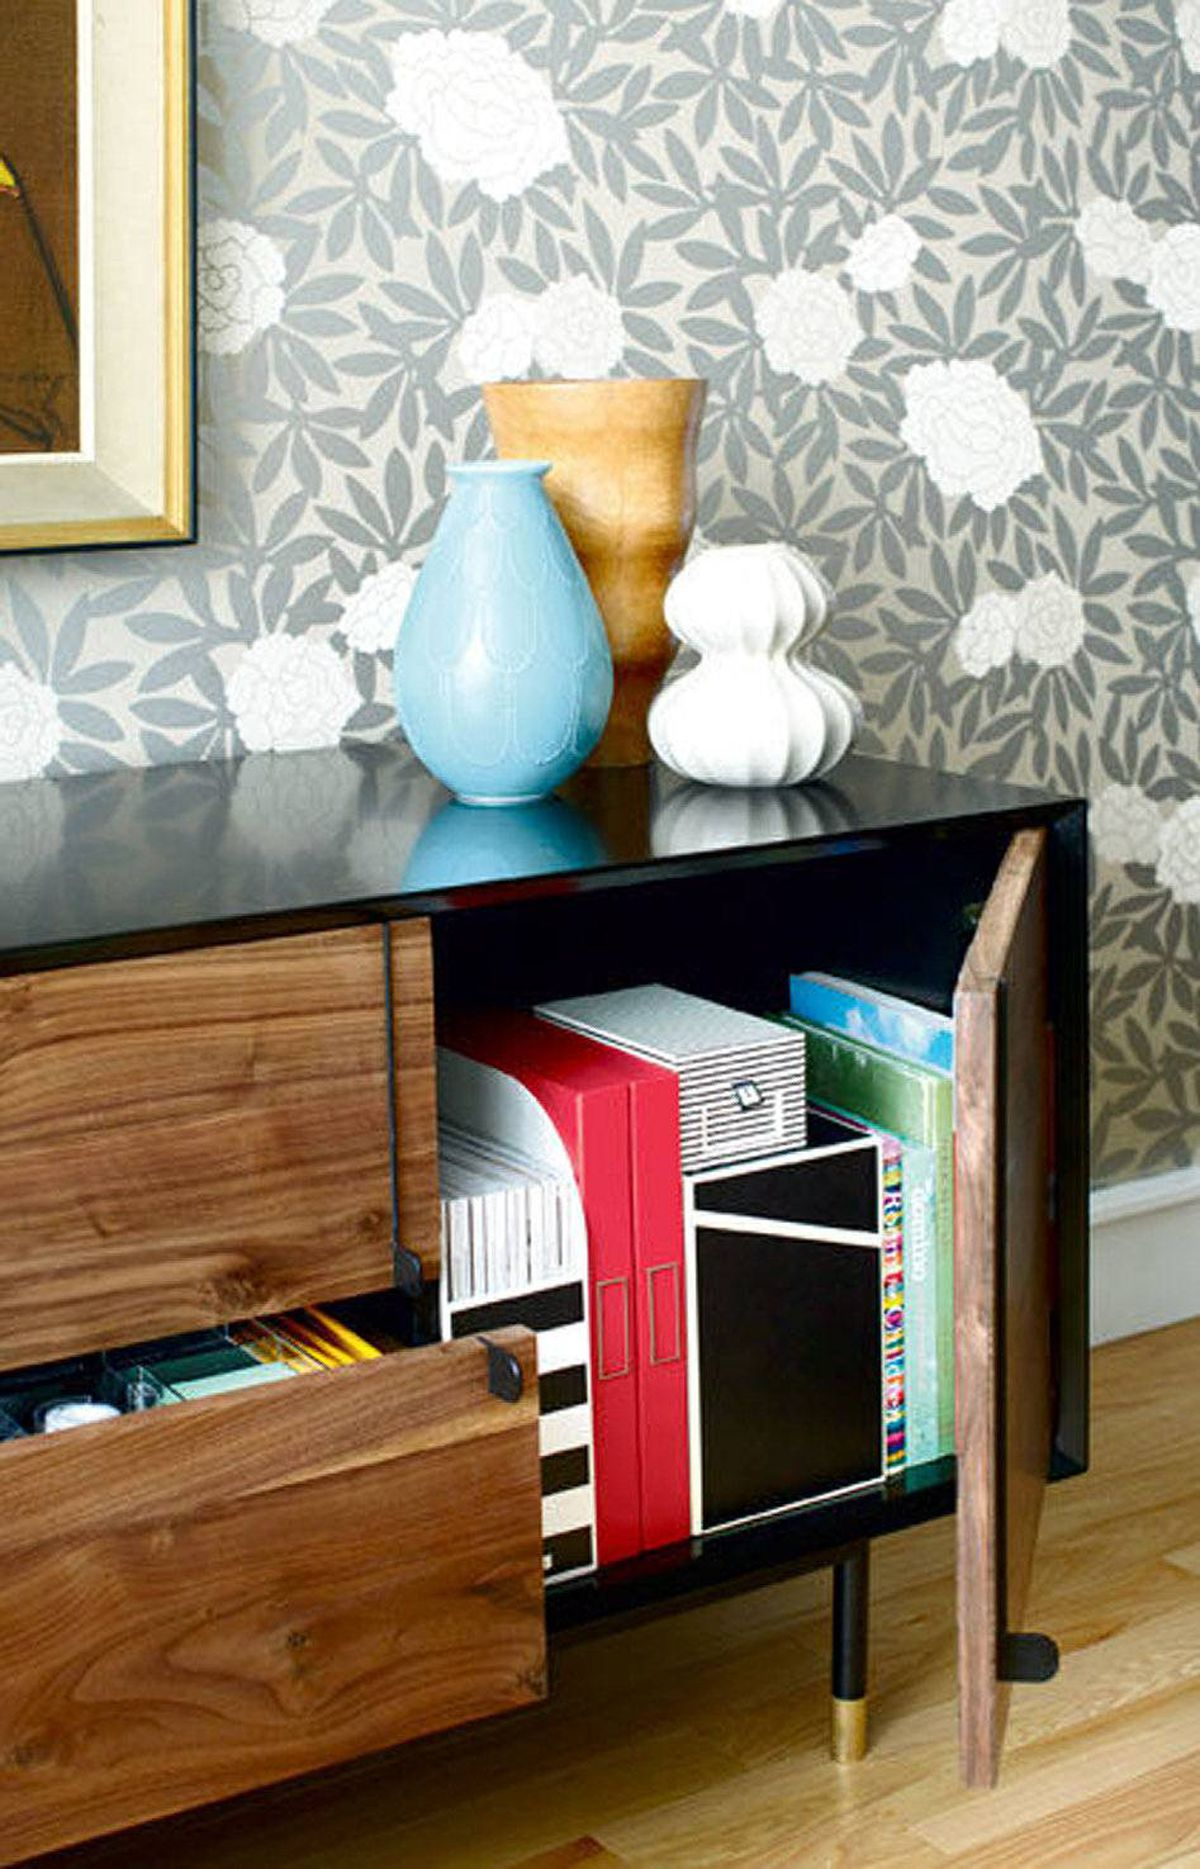 RETHINK YOUR OFFICE SPACE Work at home? No? Then you don't need a home office. Find a stylish storage unit instead for your bills. Where to buy: Luna 3 cabinet, $1,099 at Shelter (www.shelterfurniture.ca) Bigso AB files and boxes, $9.99 to $19.99 at Solutions (www.solutions-stores.ca)